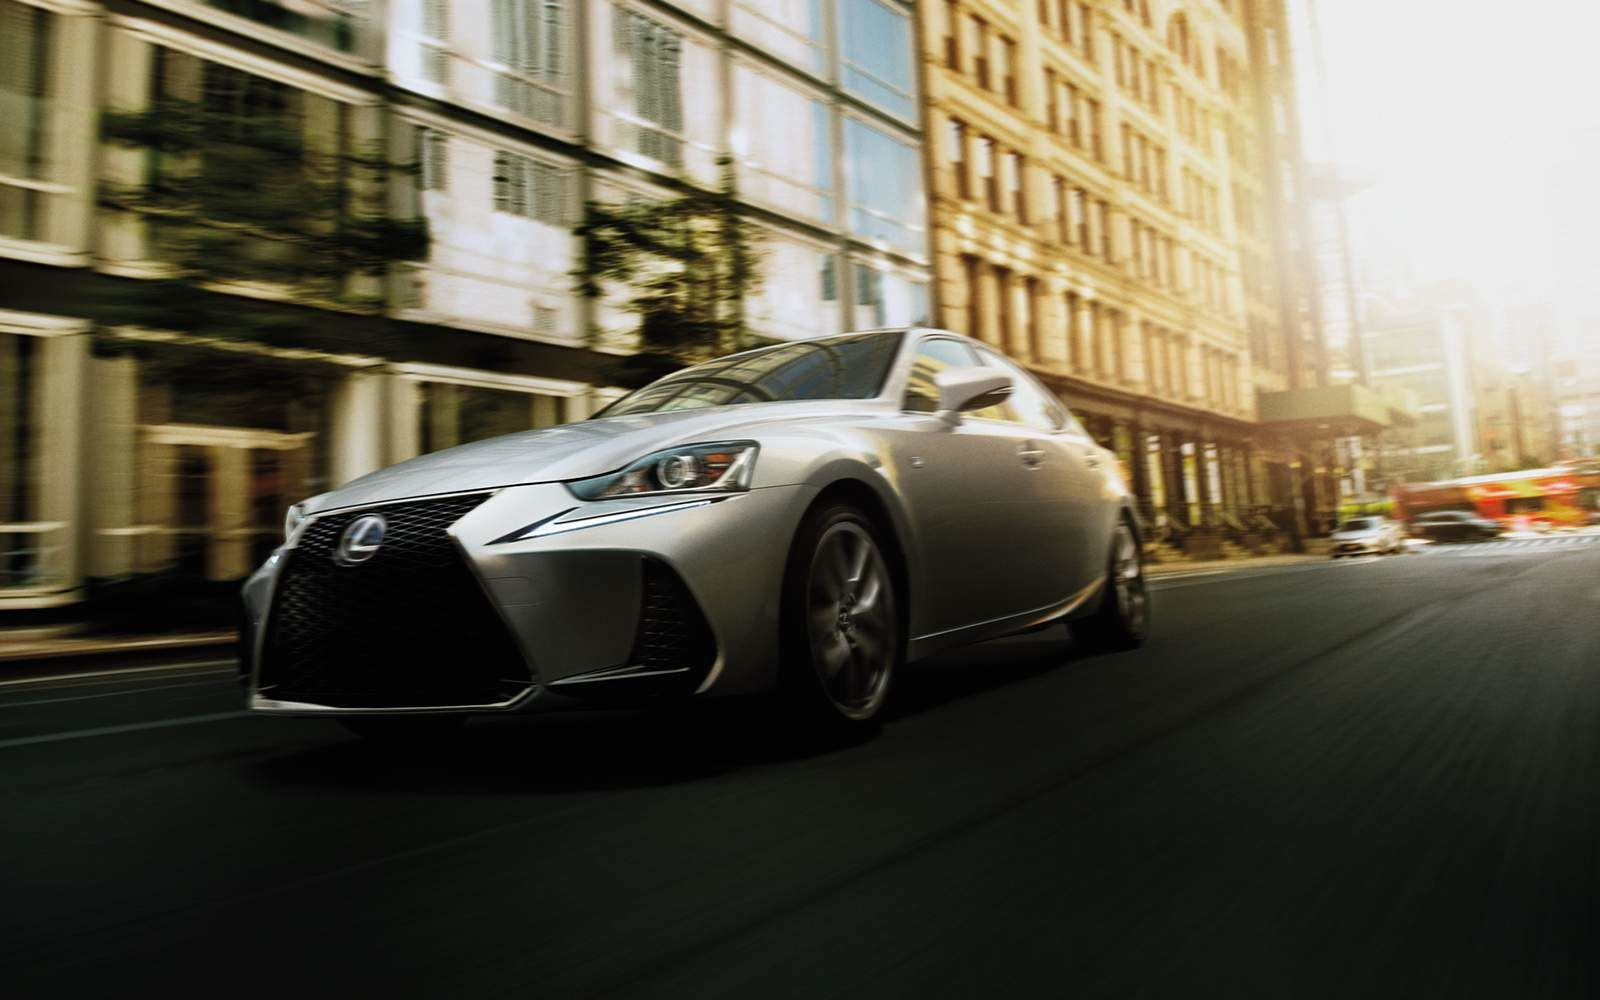 Lexus 2020 Is 350 Awd F Sport Series 2 Atomic Silver L